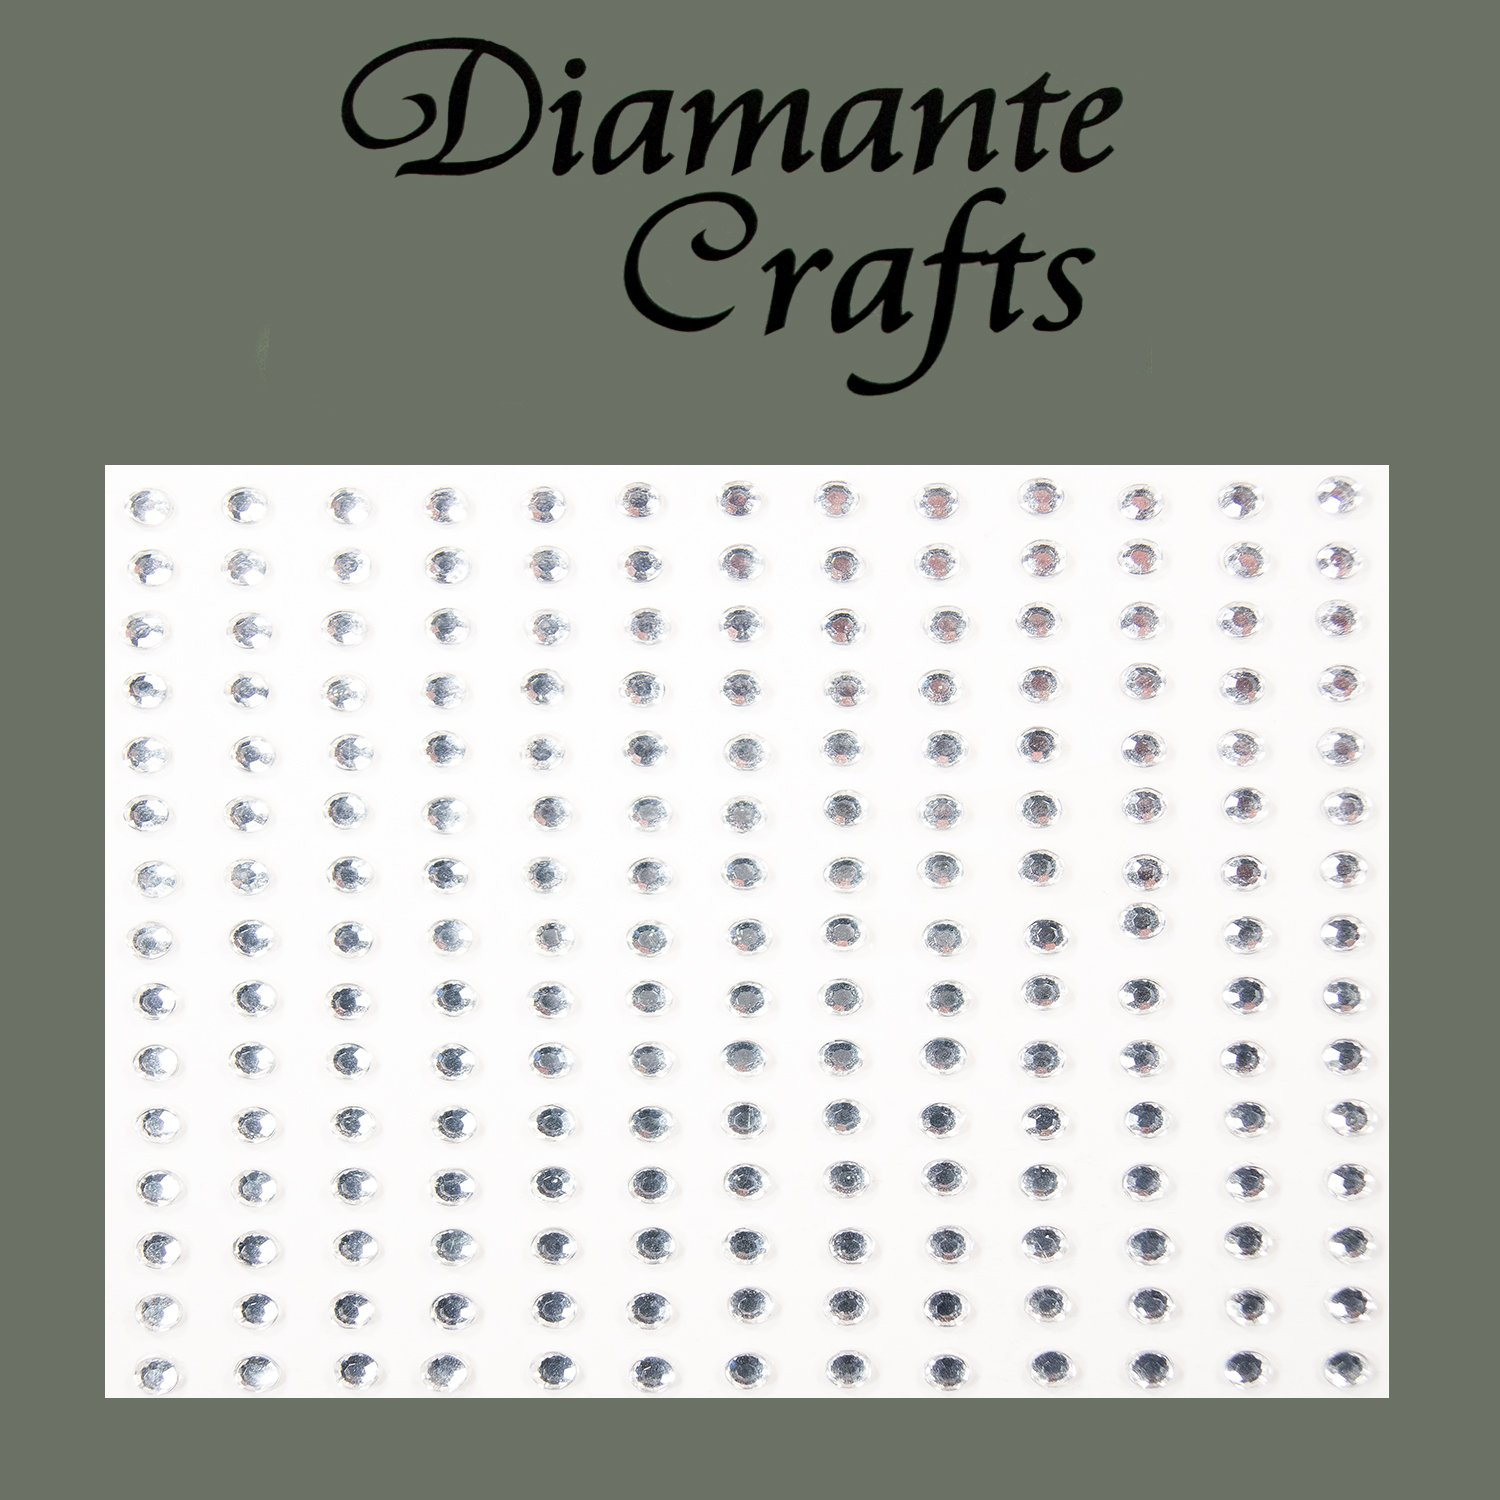 195 x 3mm Clear Diamante Self Adhesive Rhinestone Body Vajazzle Gems - created exclusively for Diamante Crafts